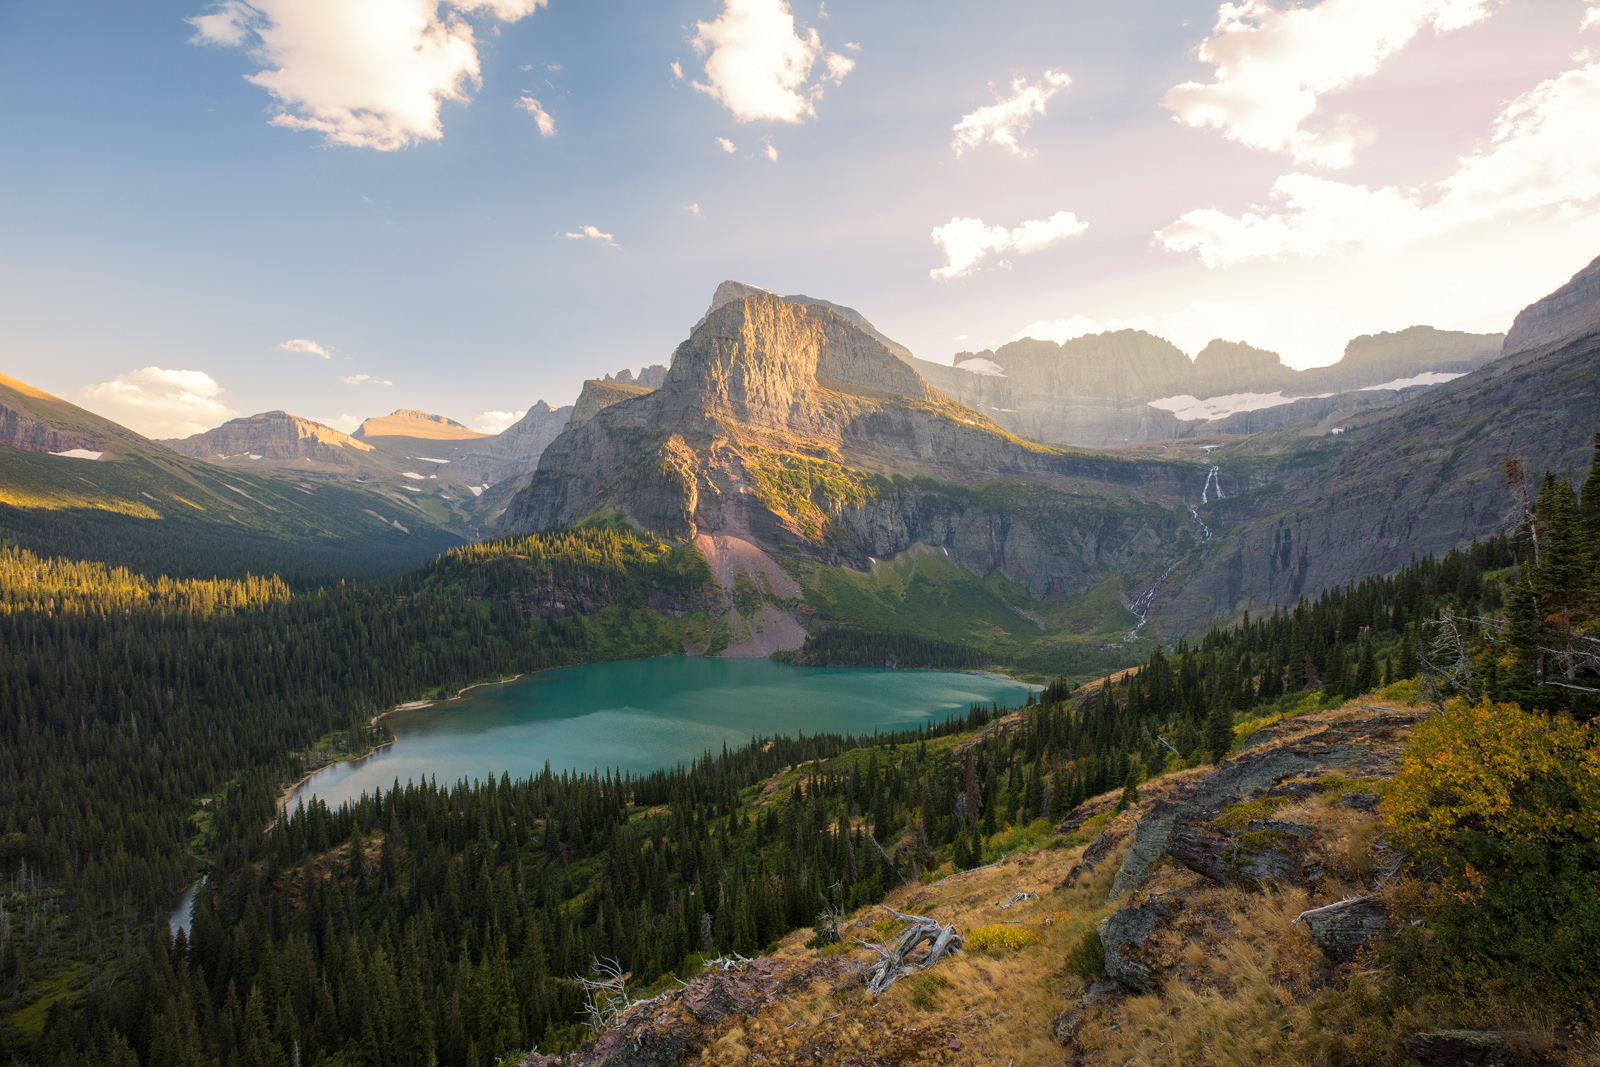 GNP, Glacier National Park, Grinnell Glacier Trail, Lower Grinnell Lake, Montana, Summer, hiking, sunset